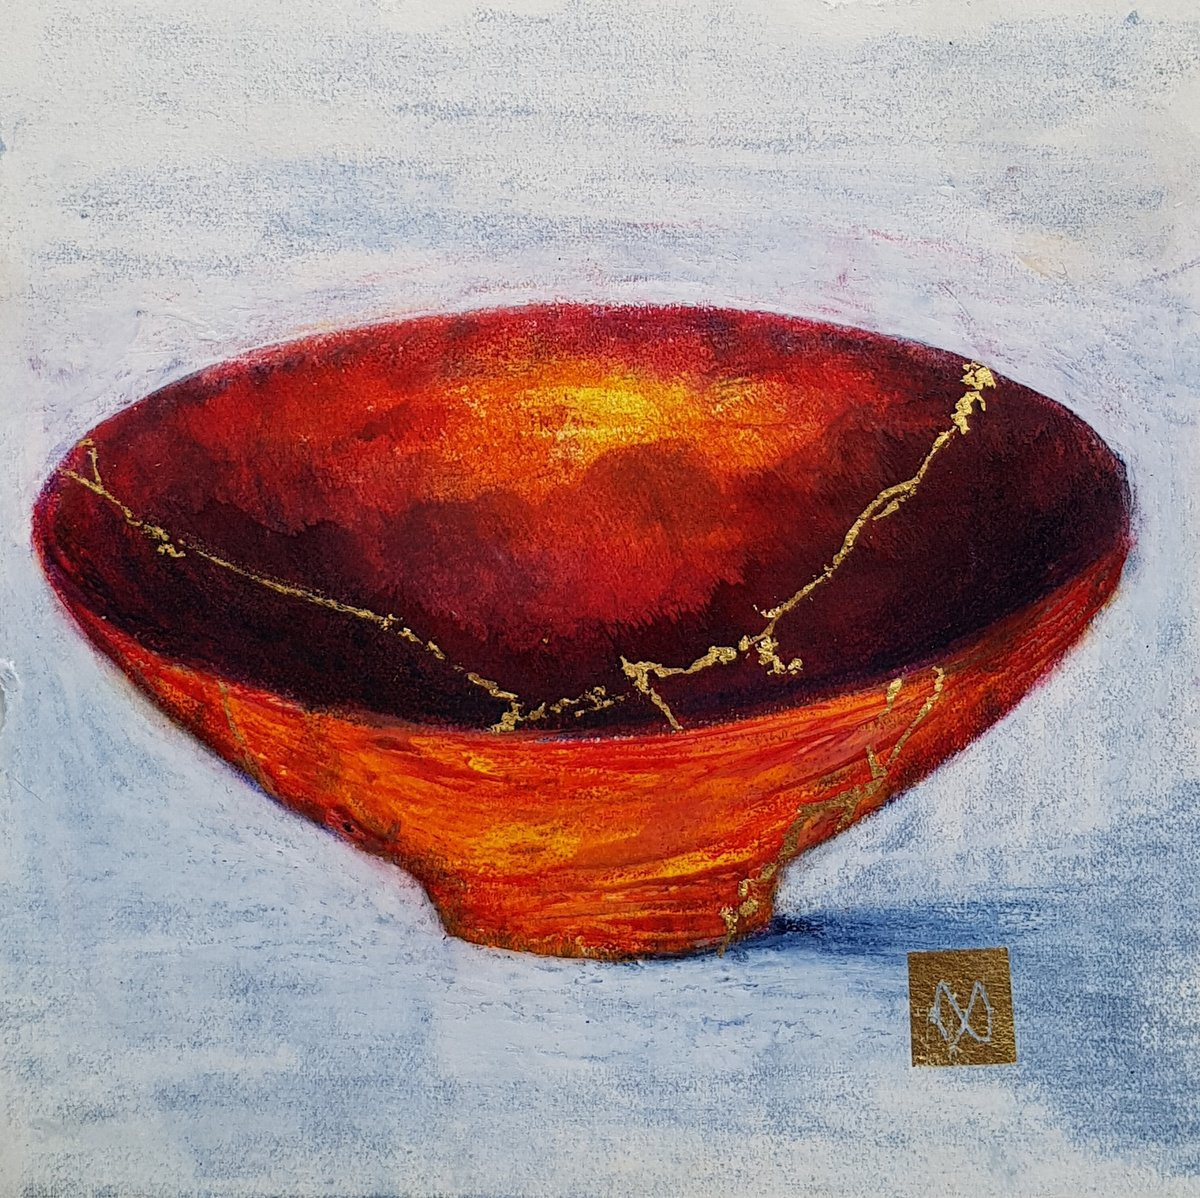 painting of Japanese kintsugi Summer tea bowl with gold by Irish artist orange red